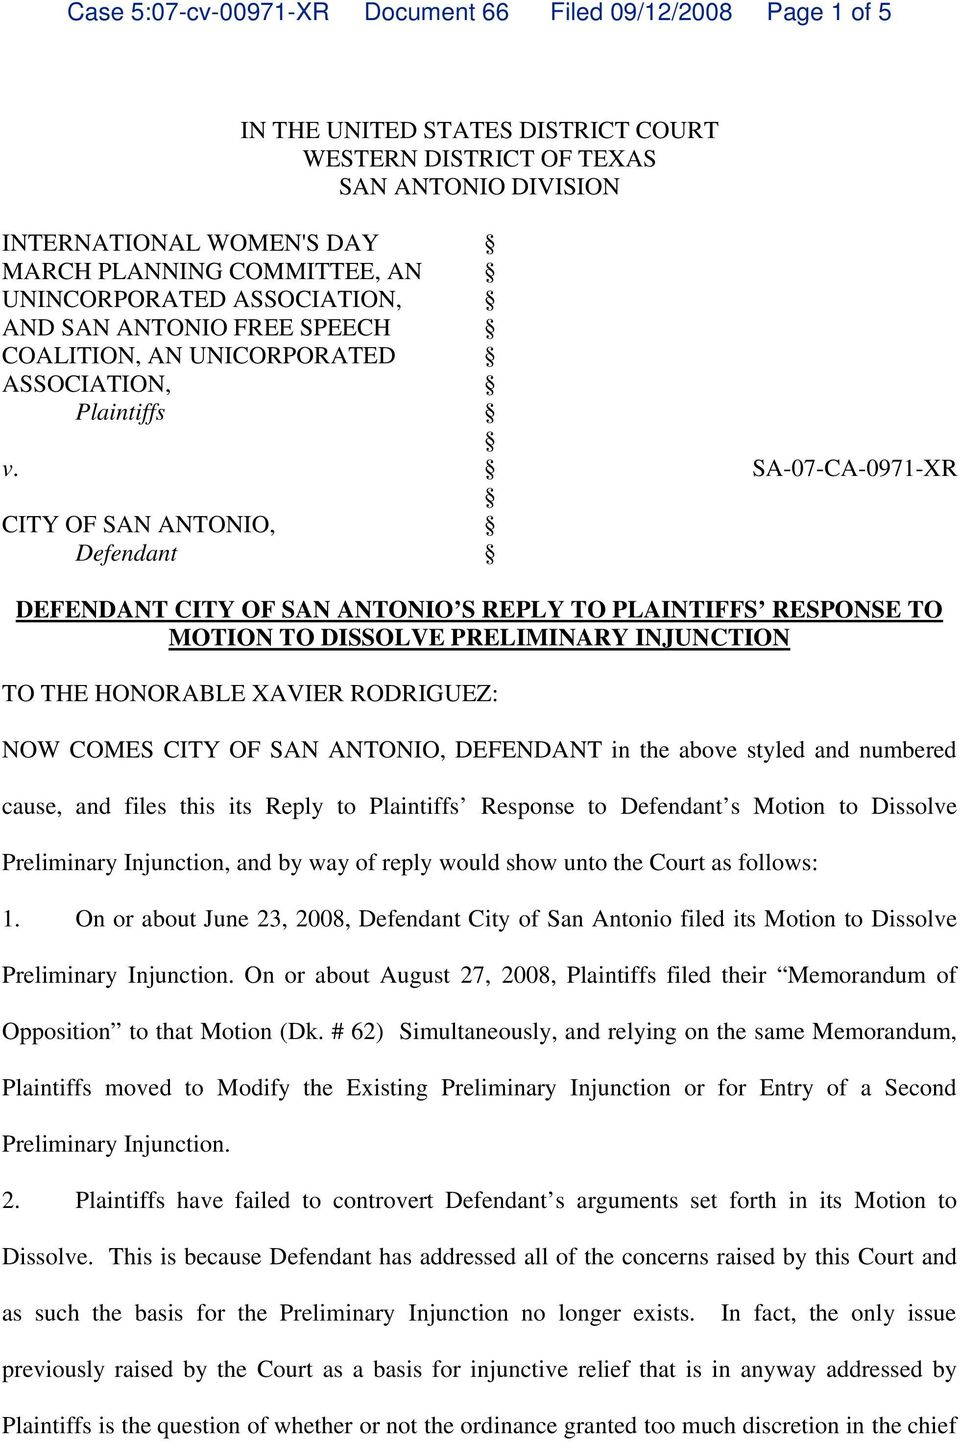 SA-07-CA-0971-XR CITY OF SAN ANTONIO, Defendant DEFENDANT CITY OF SAN ANTONIO S REPLY TO PLAINTIFFS RESPONSE TO MOTION TO DISSOLVE PRELIMINARY INJUNCTION TO THE HONORABLE XAVIER RODRIGUEZ: NOW COMES